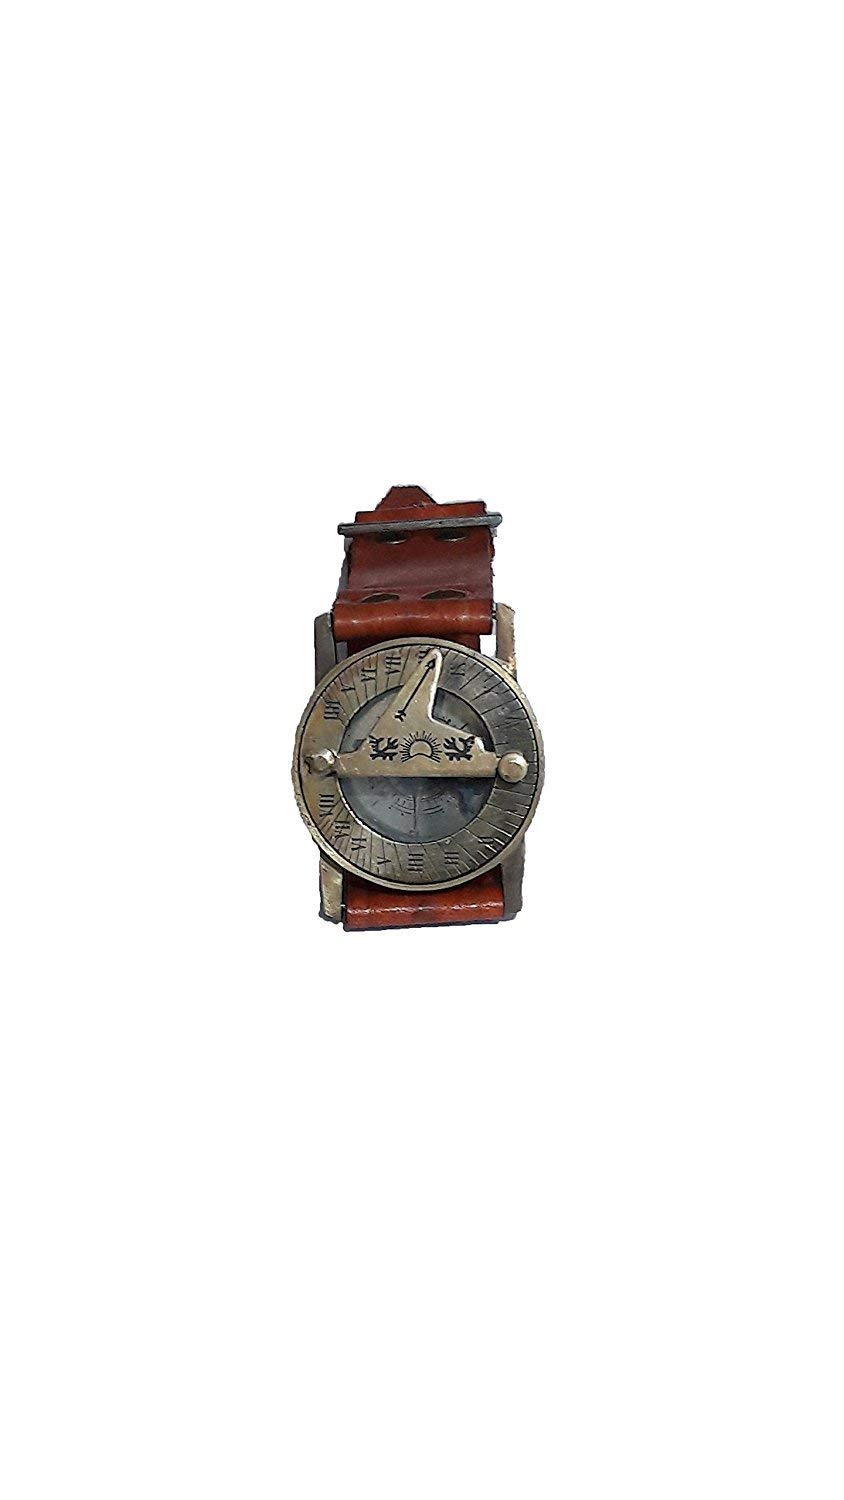 Wrist Brass Compass & Sundial-Watch With Leather Strap Sundial